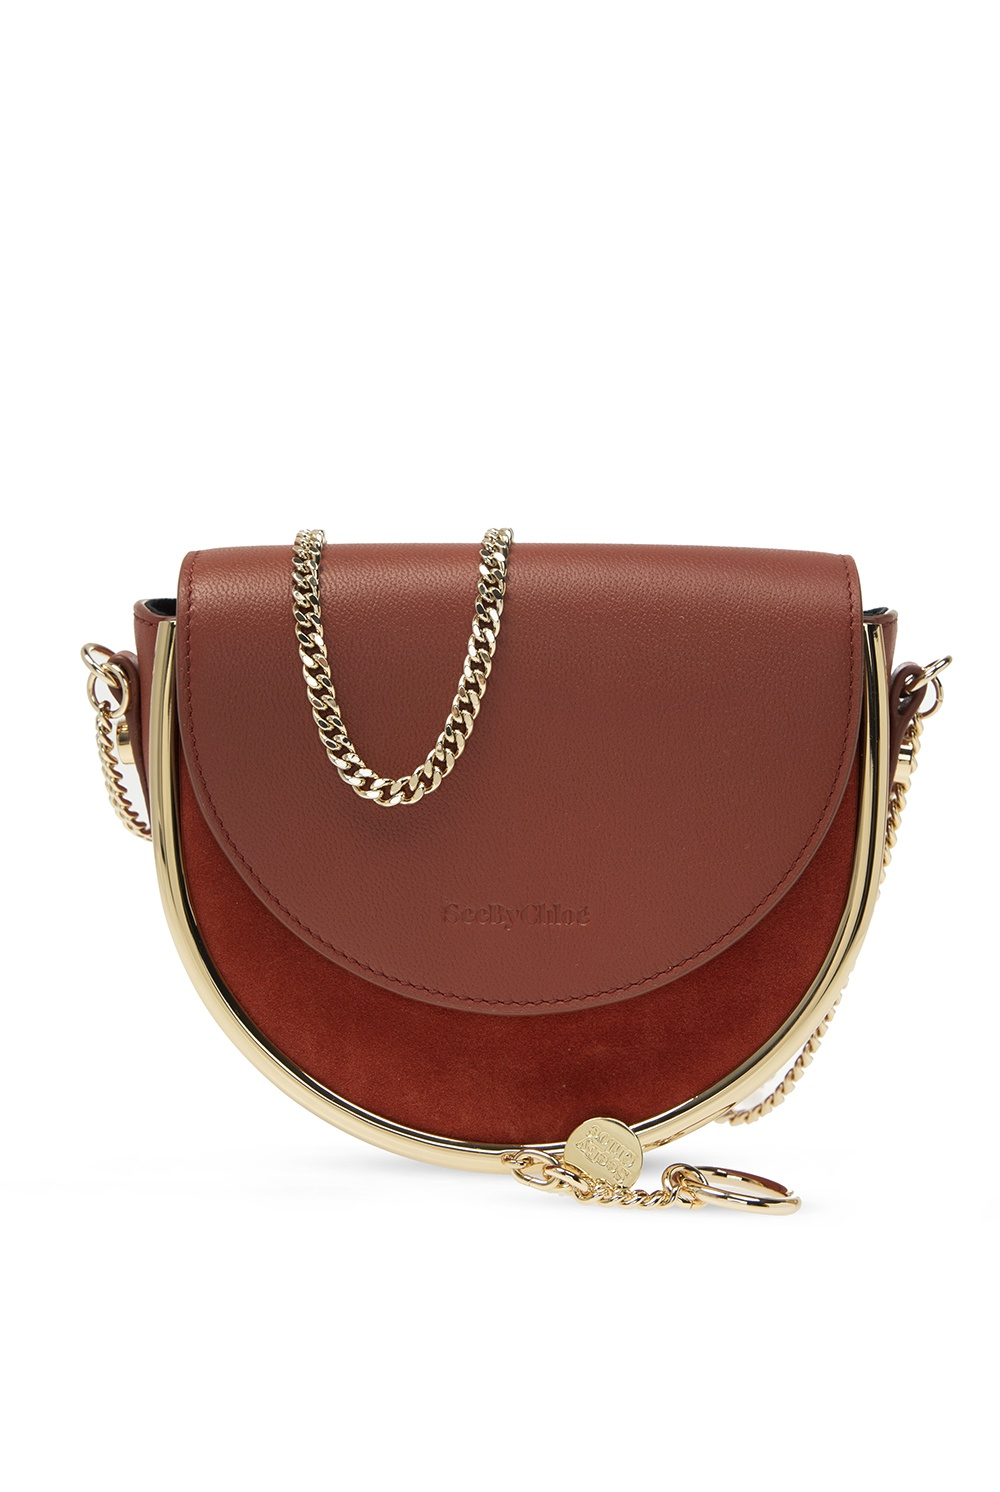 See By Chloe 'Mara' shoulder bag